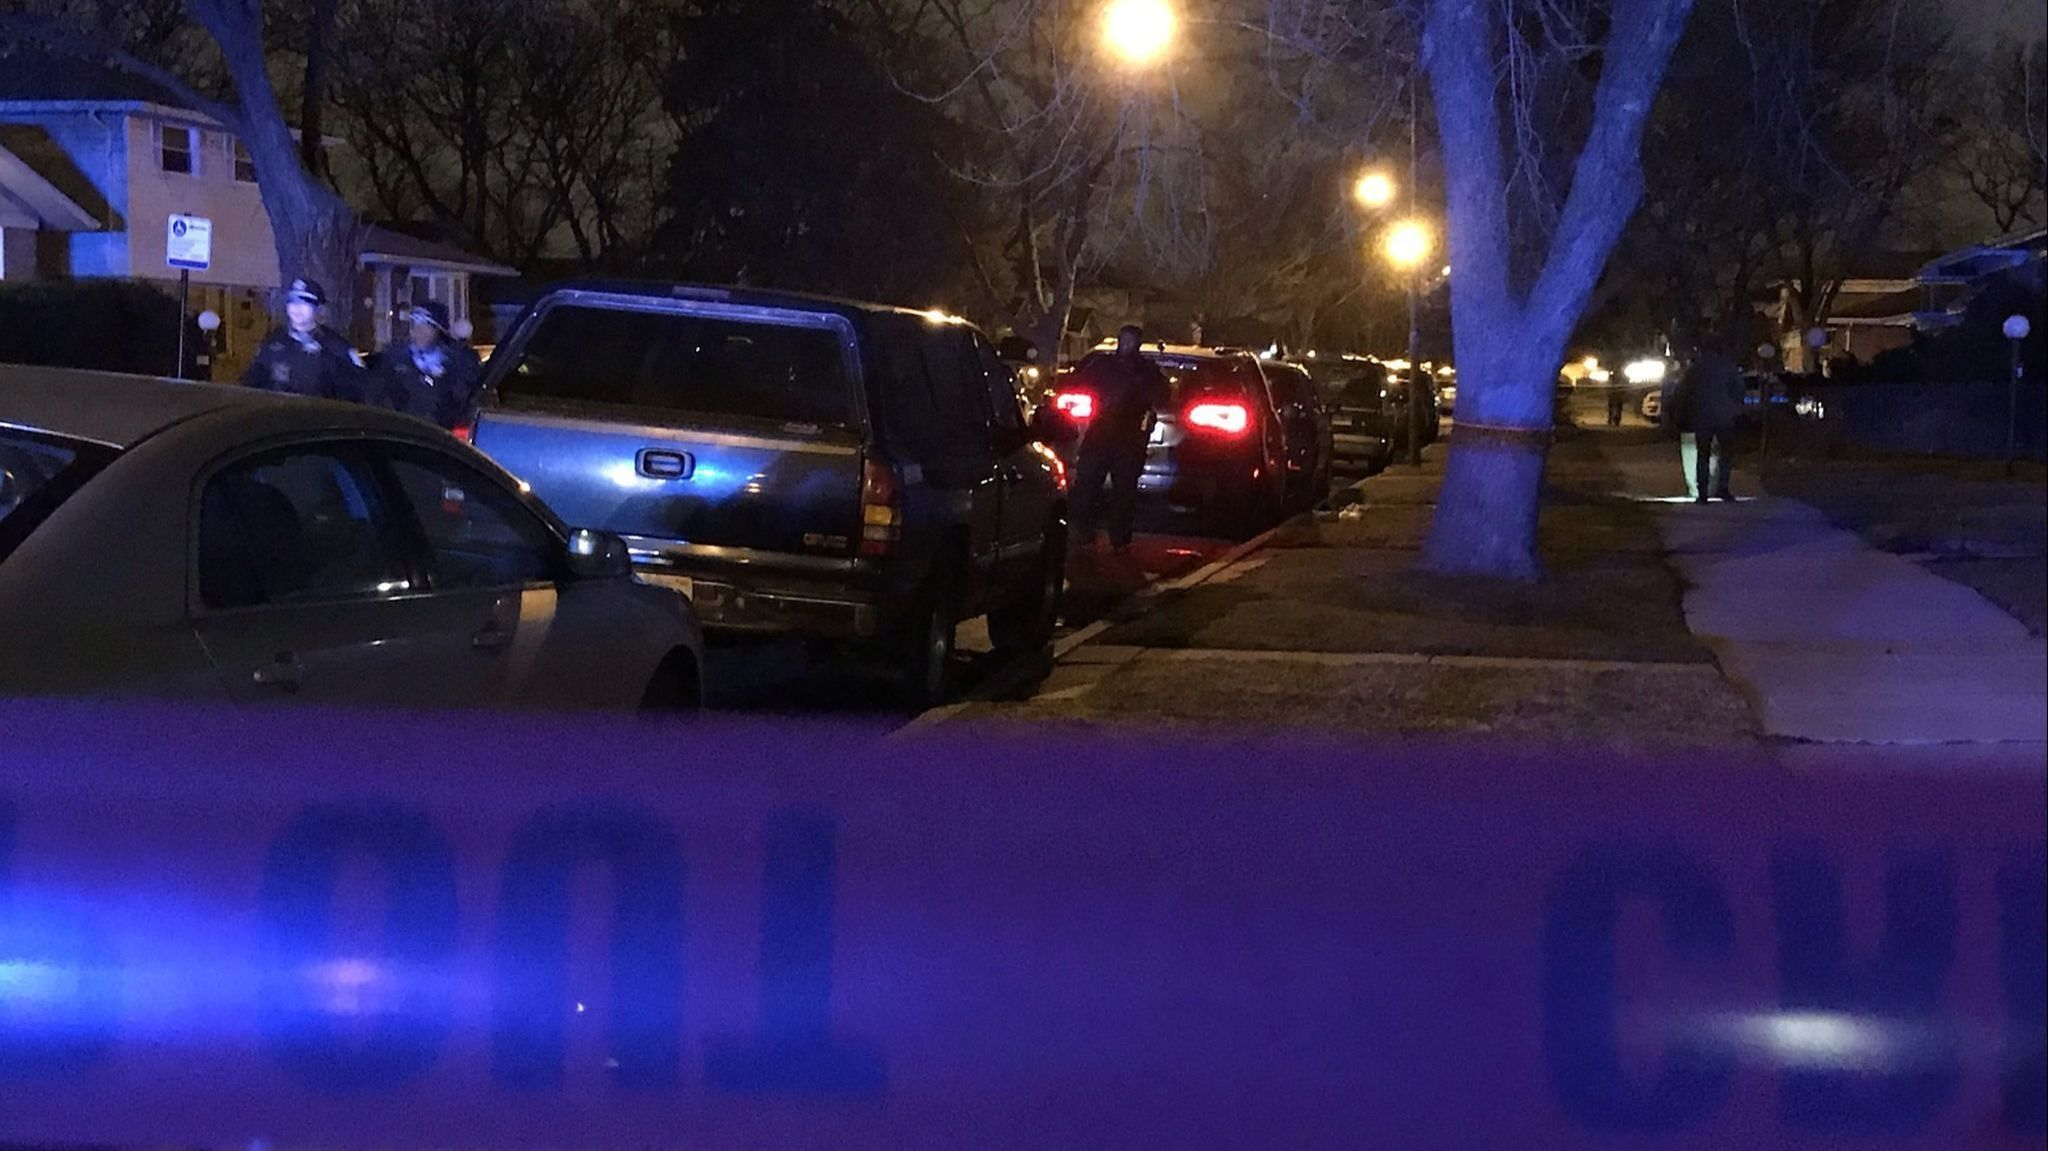 Baby wounded, woman killed in West Pullman triple shooting